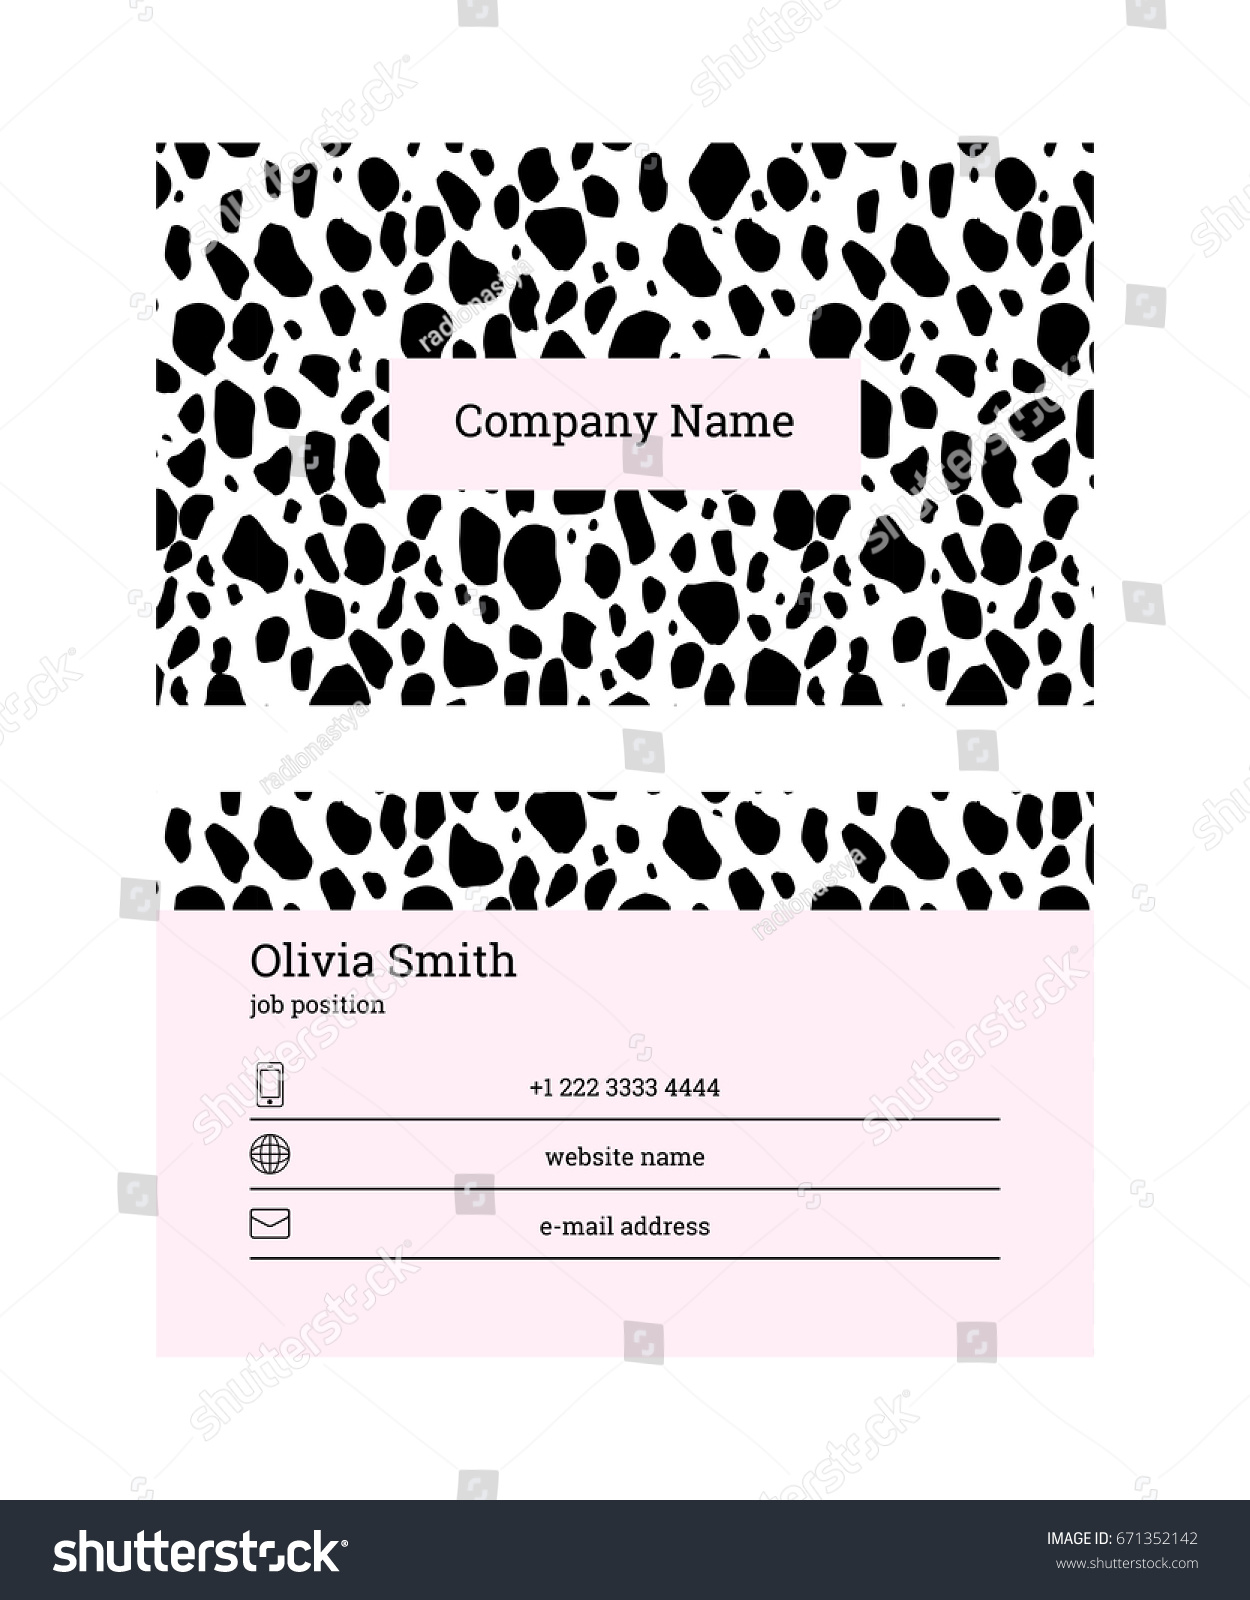 Doublesided Business Card Template Information On Stock Vector ...